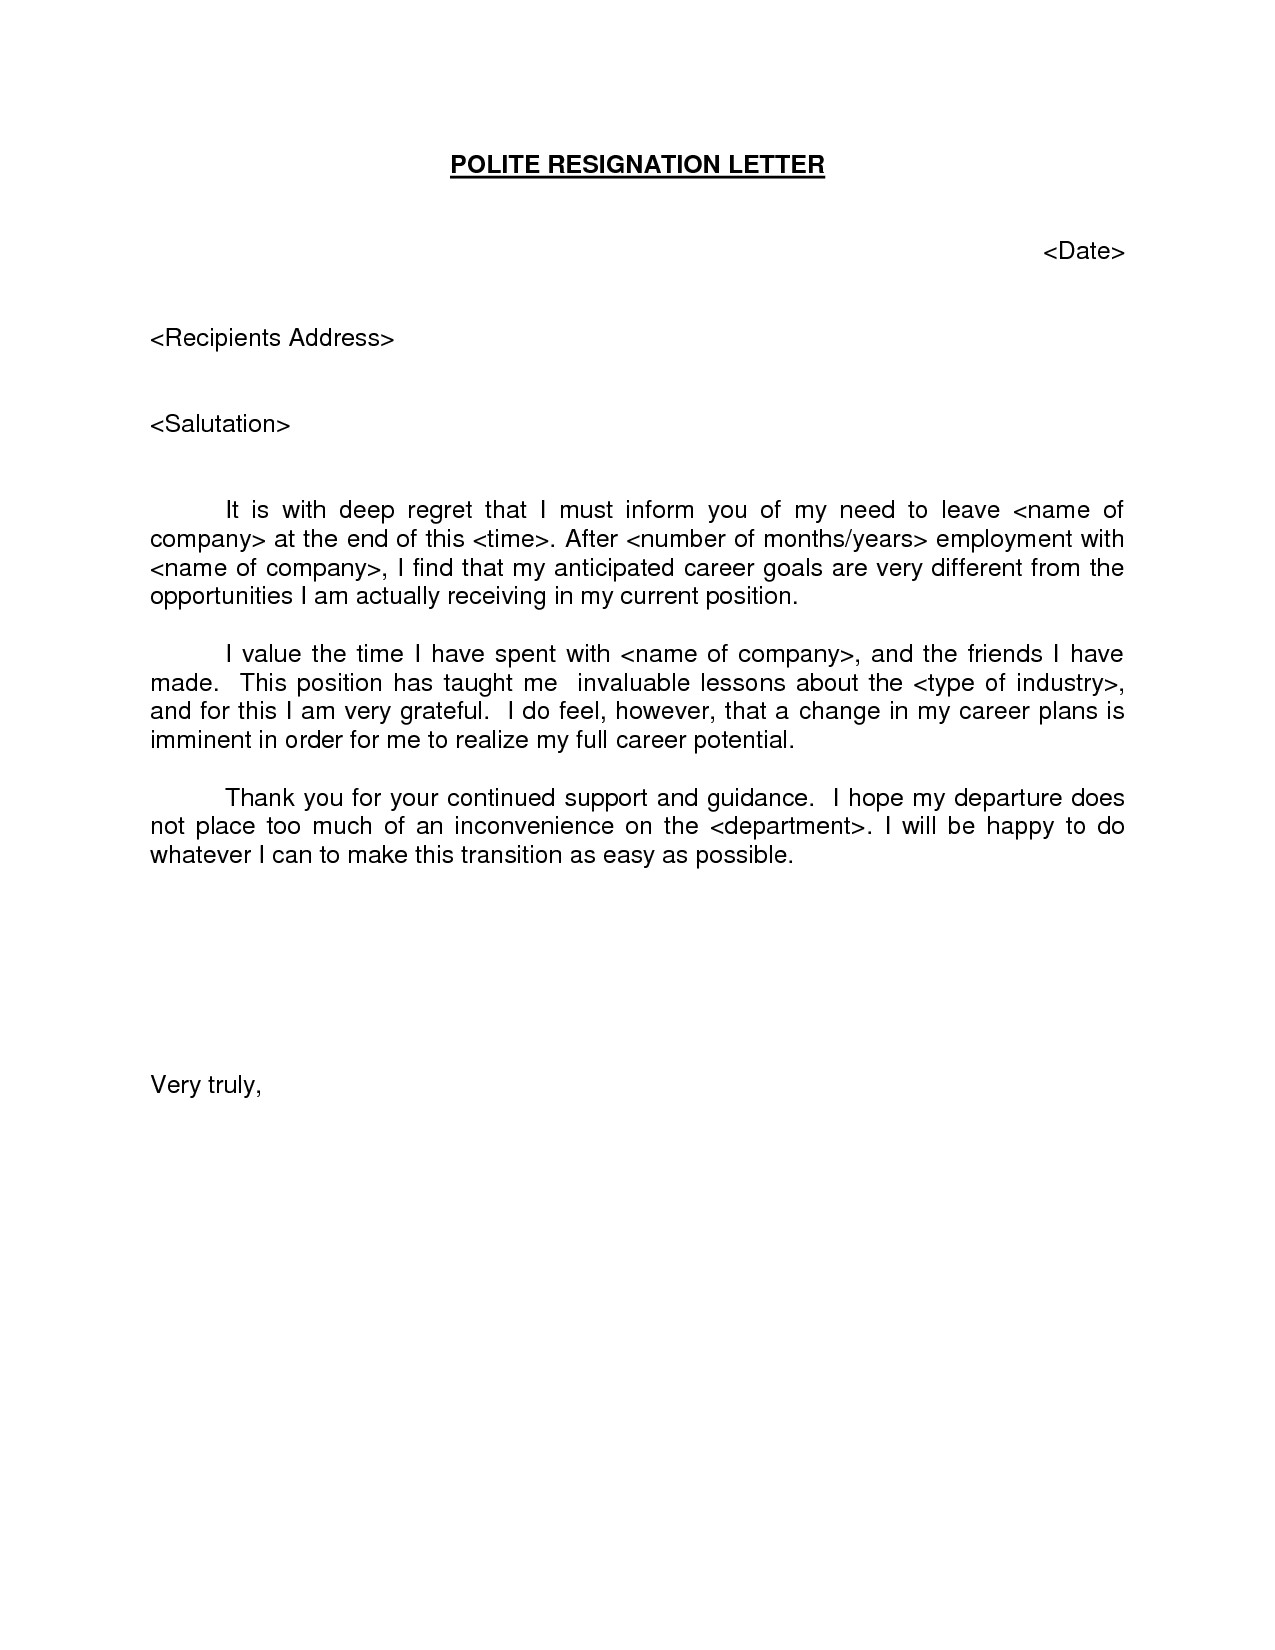 Resignation Letter From Board Of Directors Template - Business Letter format Template Valid Polite Resignation Letter